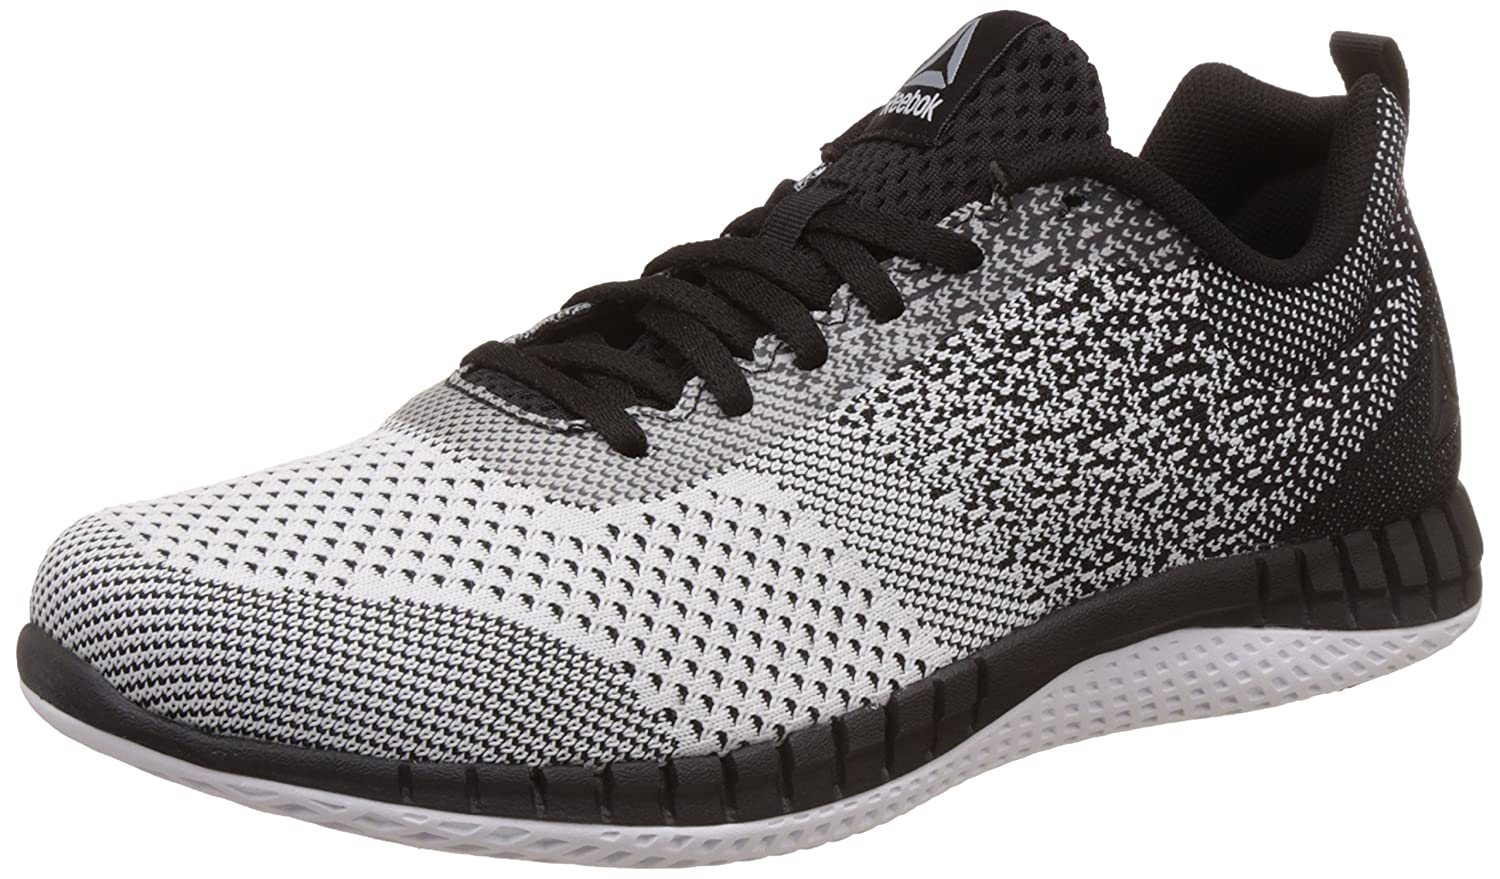 a8622b032c3 Reebok Men s Print Run Prime Ultk Running Shoes  Buy Online at Low Prices  in India - Amazon.in